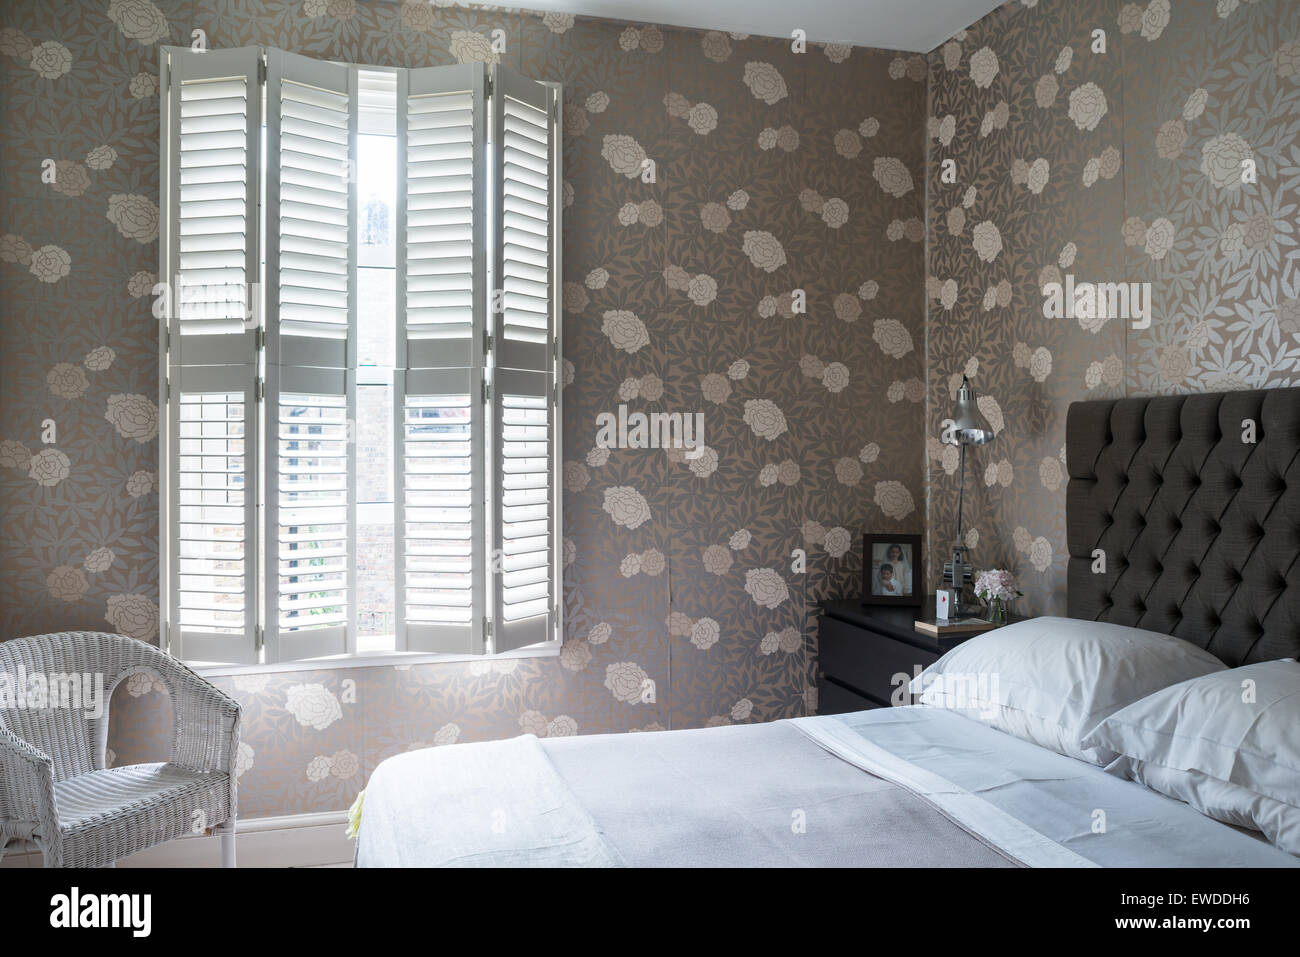 Osbourne U0026 Little Mettalic Floral Print Wallpaper In Bedroom With  Plantation Shutters And Chrome Anglepoise